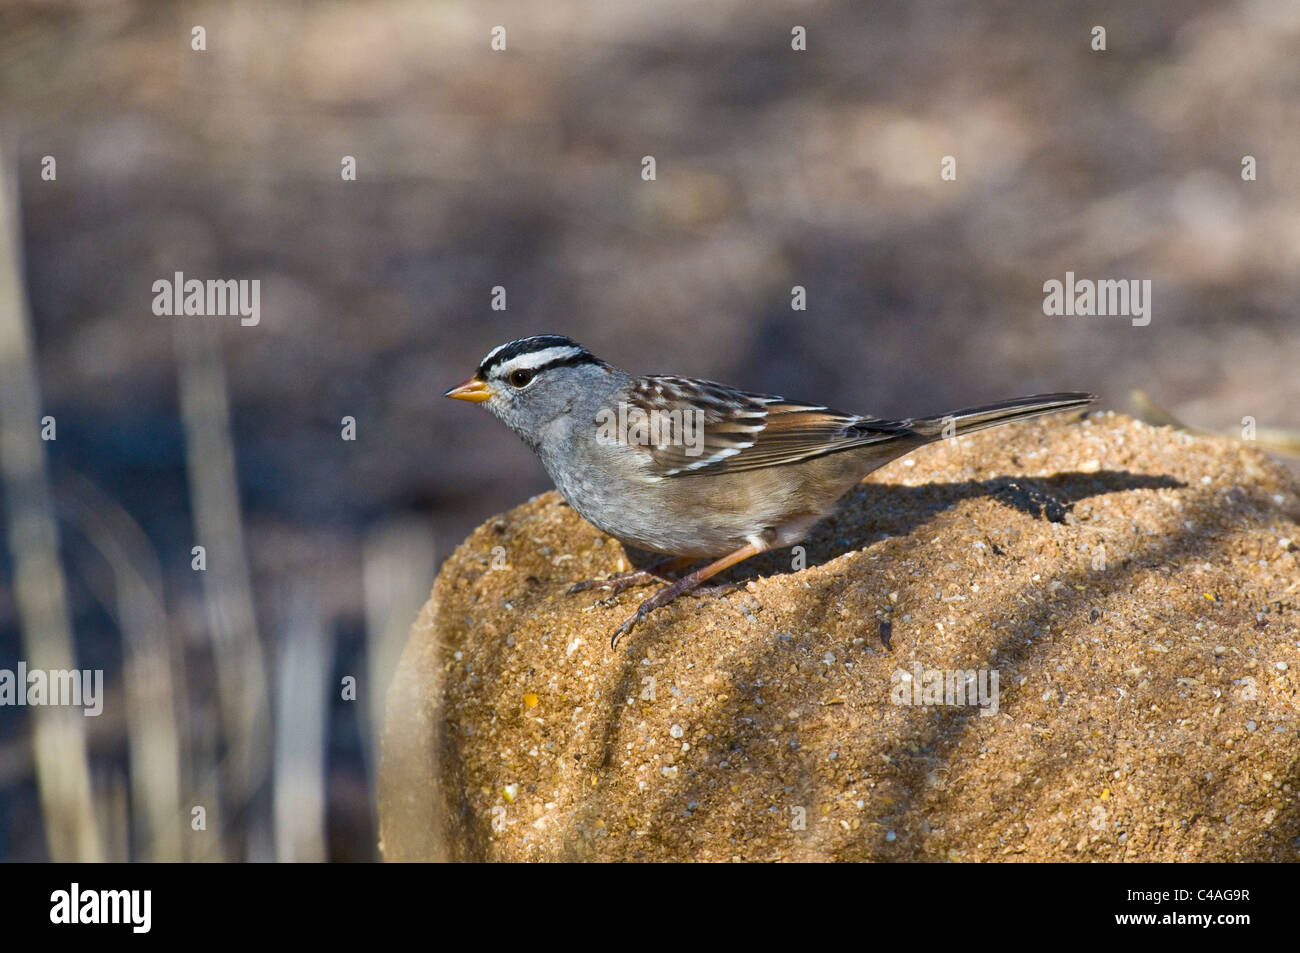 Male white-crowned sparrow (Zonotrichia leucophrys) - Stock Image